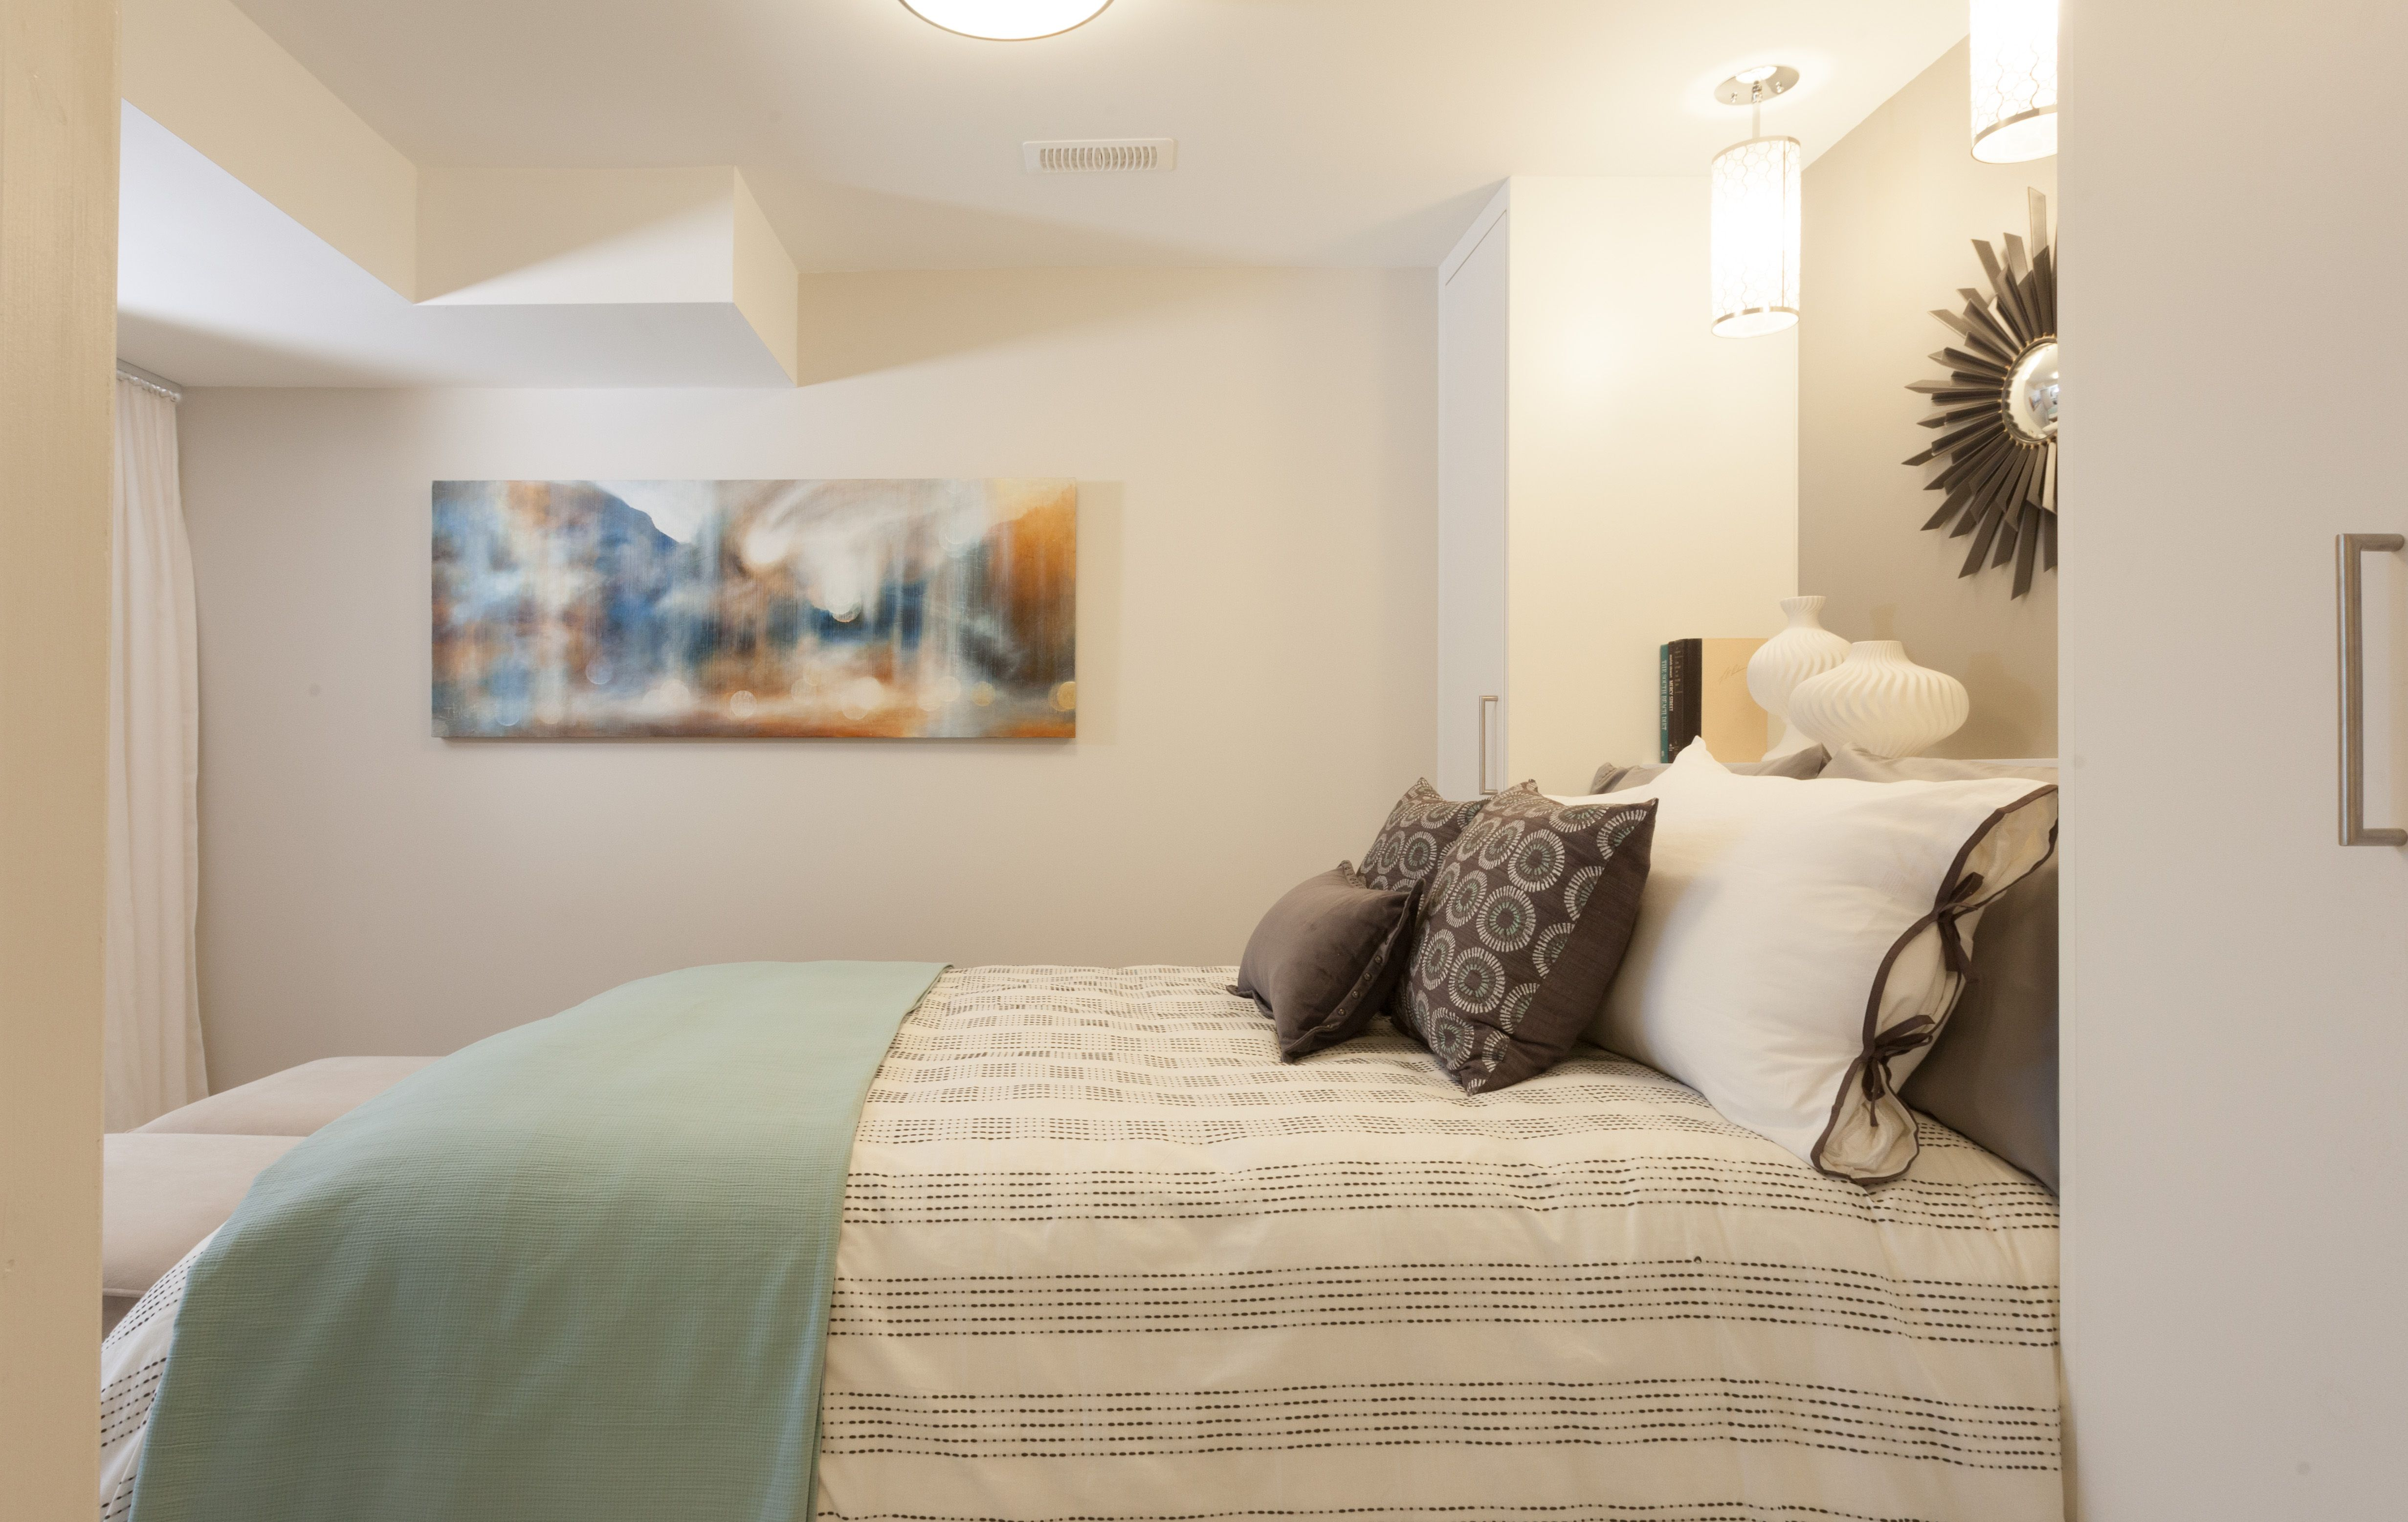 Apartments · Light And Bright Basement Bedroom #IncomeProperty #HGTV